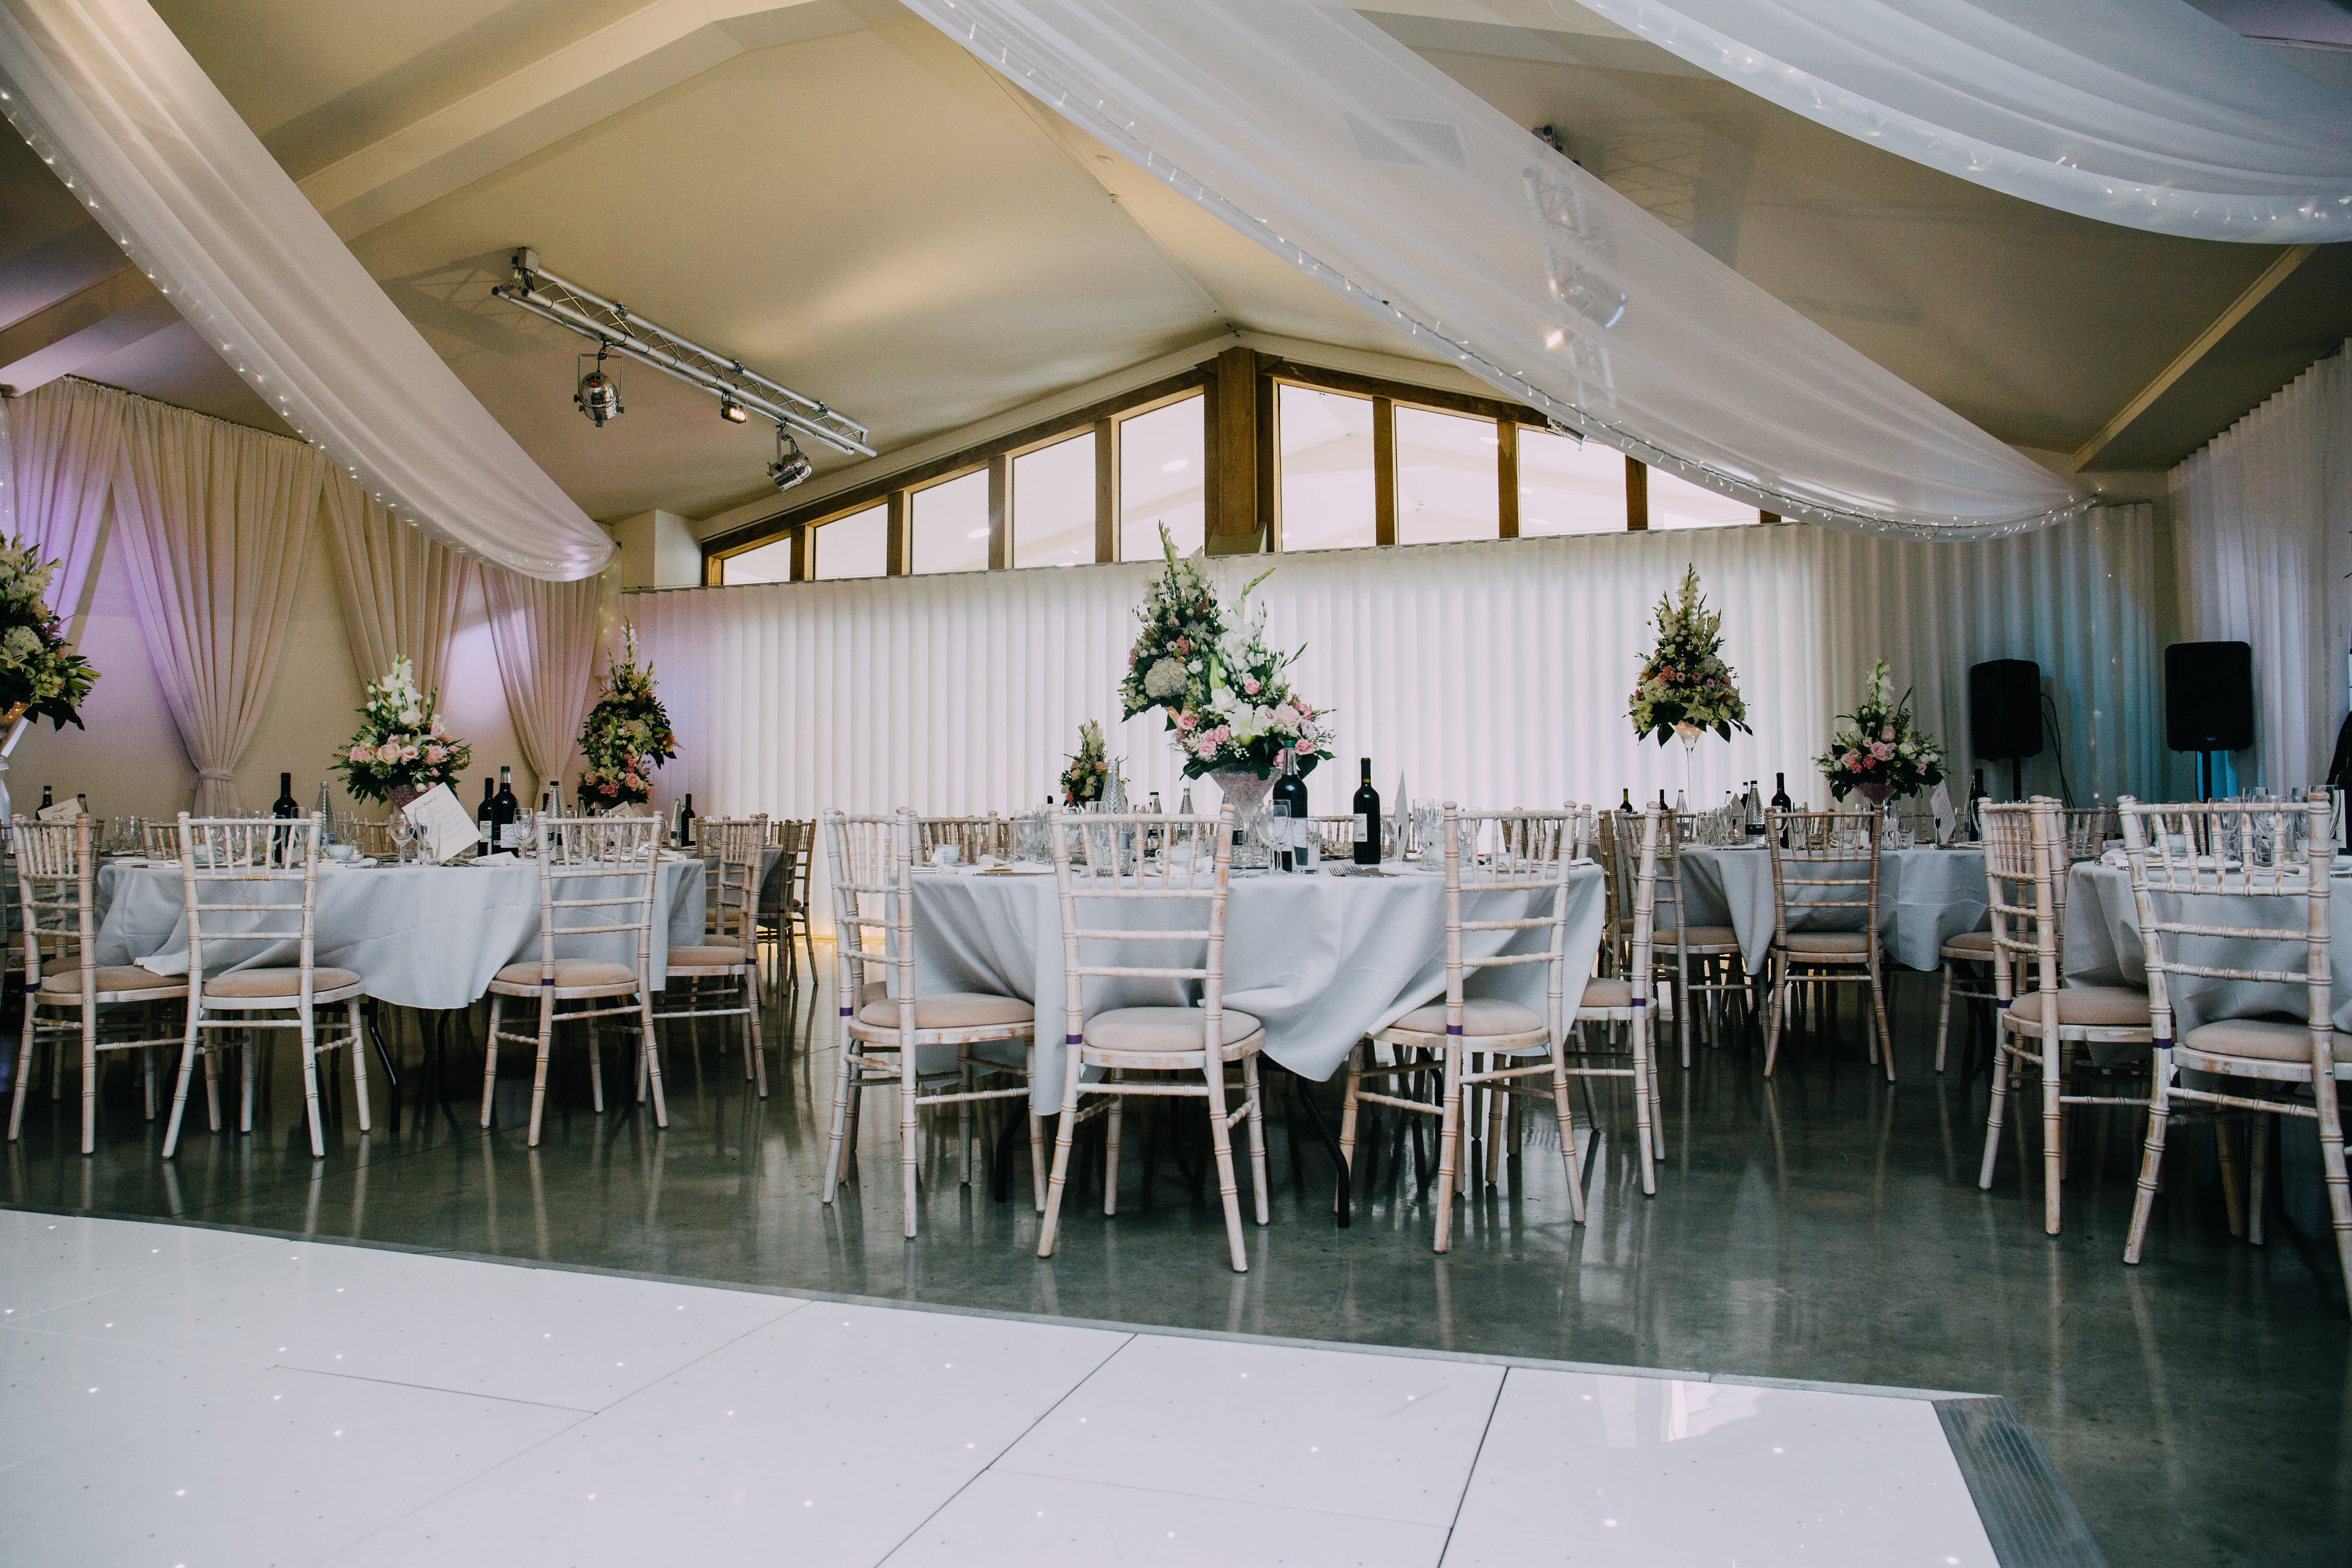 Ladywood Estate wedding decor with wall and ceiling drapes